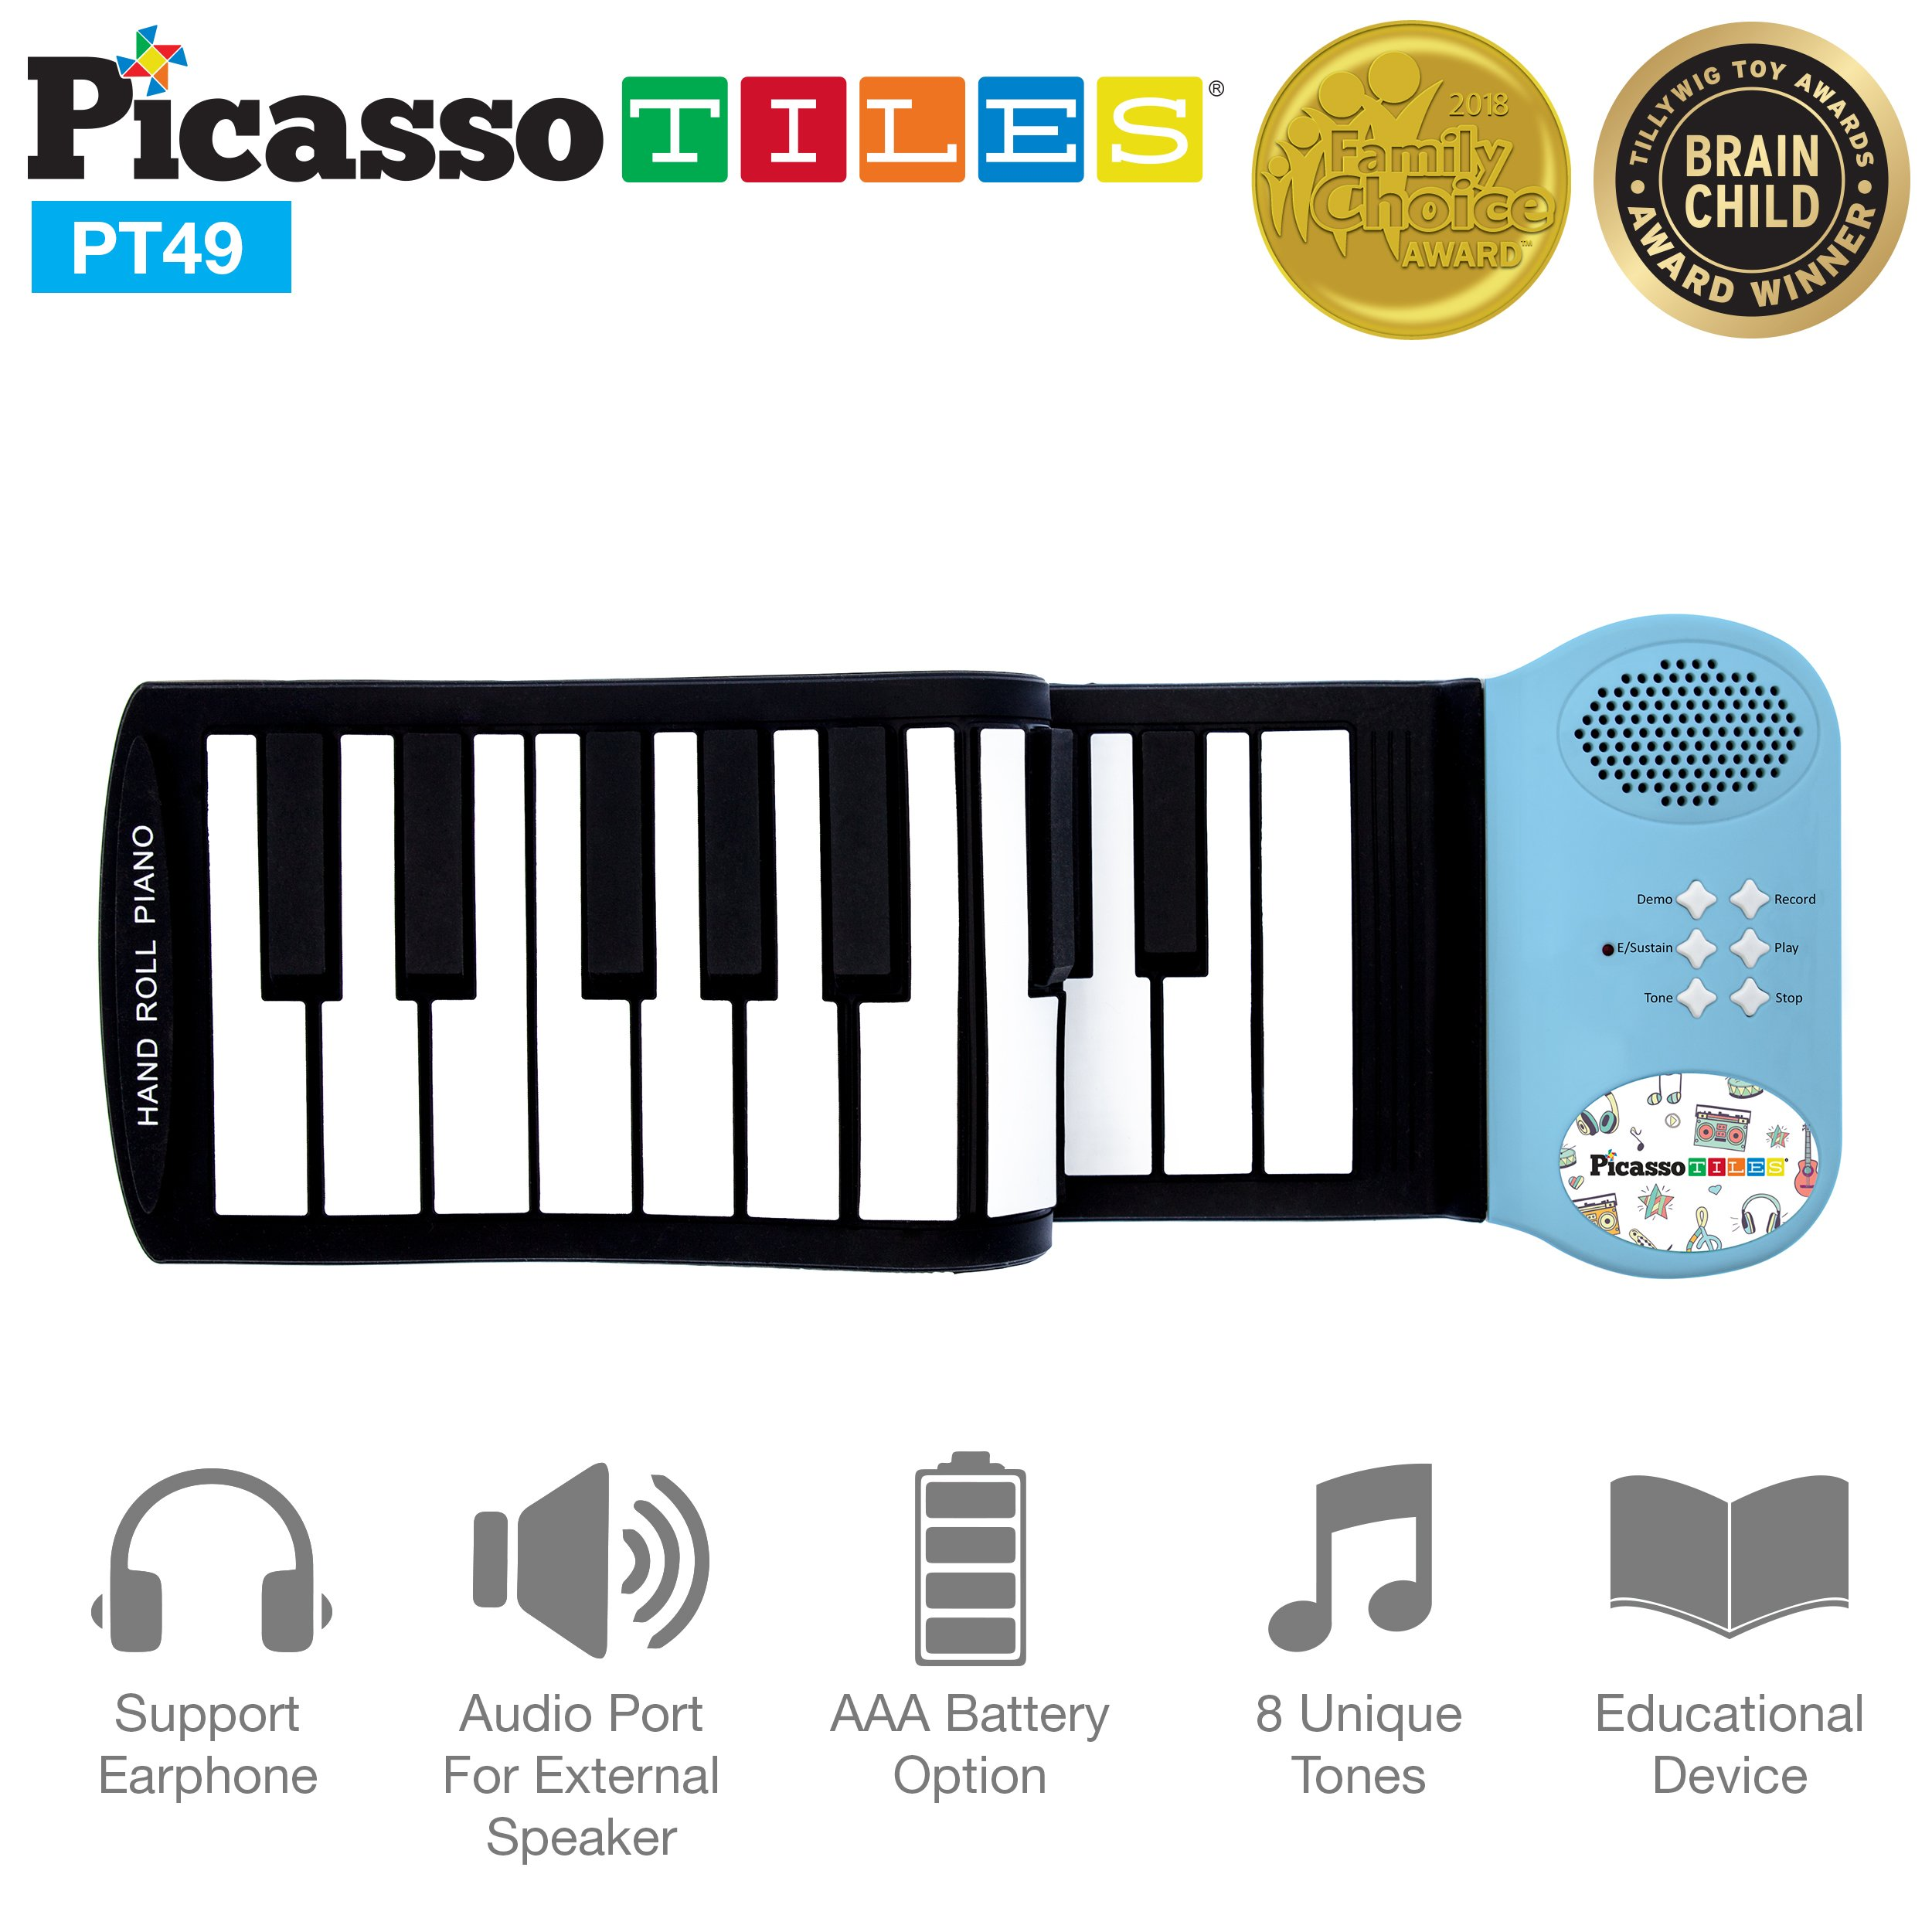 PicassoTiles PT49 Portable Kid's 49-Key Flexible Roll Up Educational Electronic Digital Music Piano Keyboard w/Recording Feature, 8 Different Tones, 6 Educational Demo Songs & Build-in Speaker - Blue